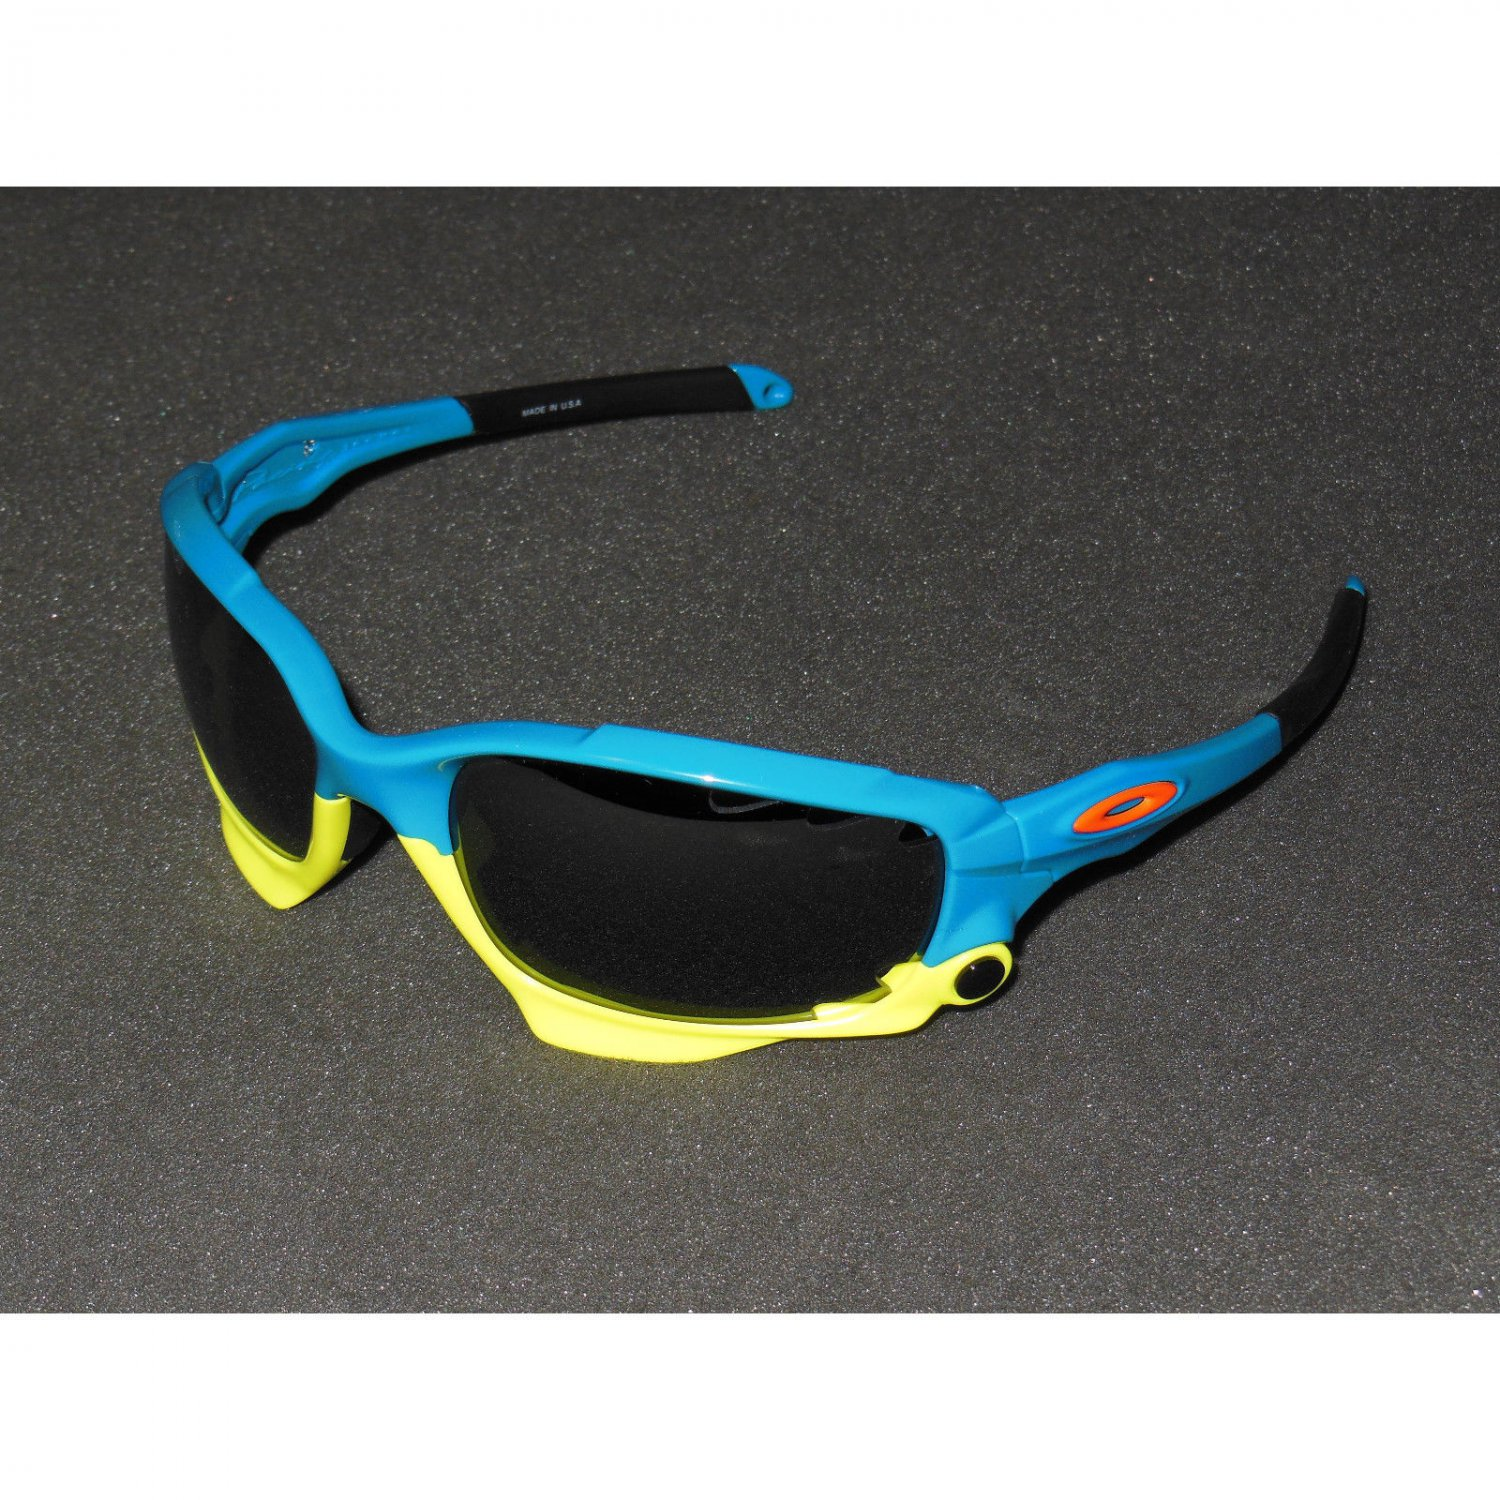 Oakley Racing Jacket Sunglasses Fathom Series Pacific Blue/Black Iridium/Clear Vented